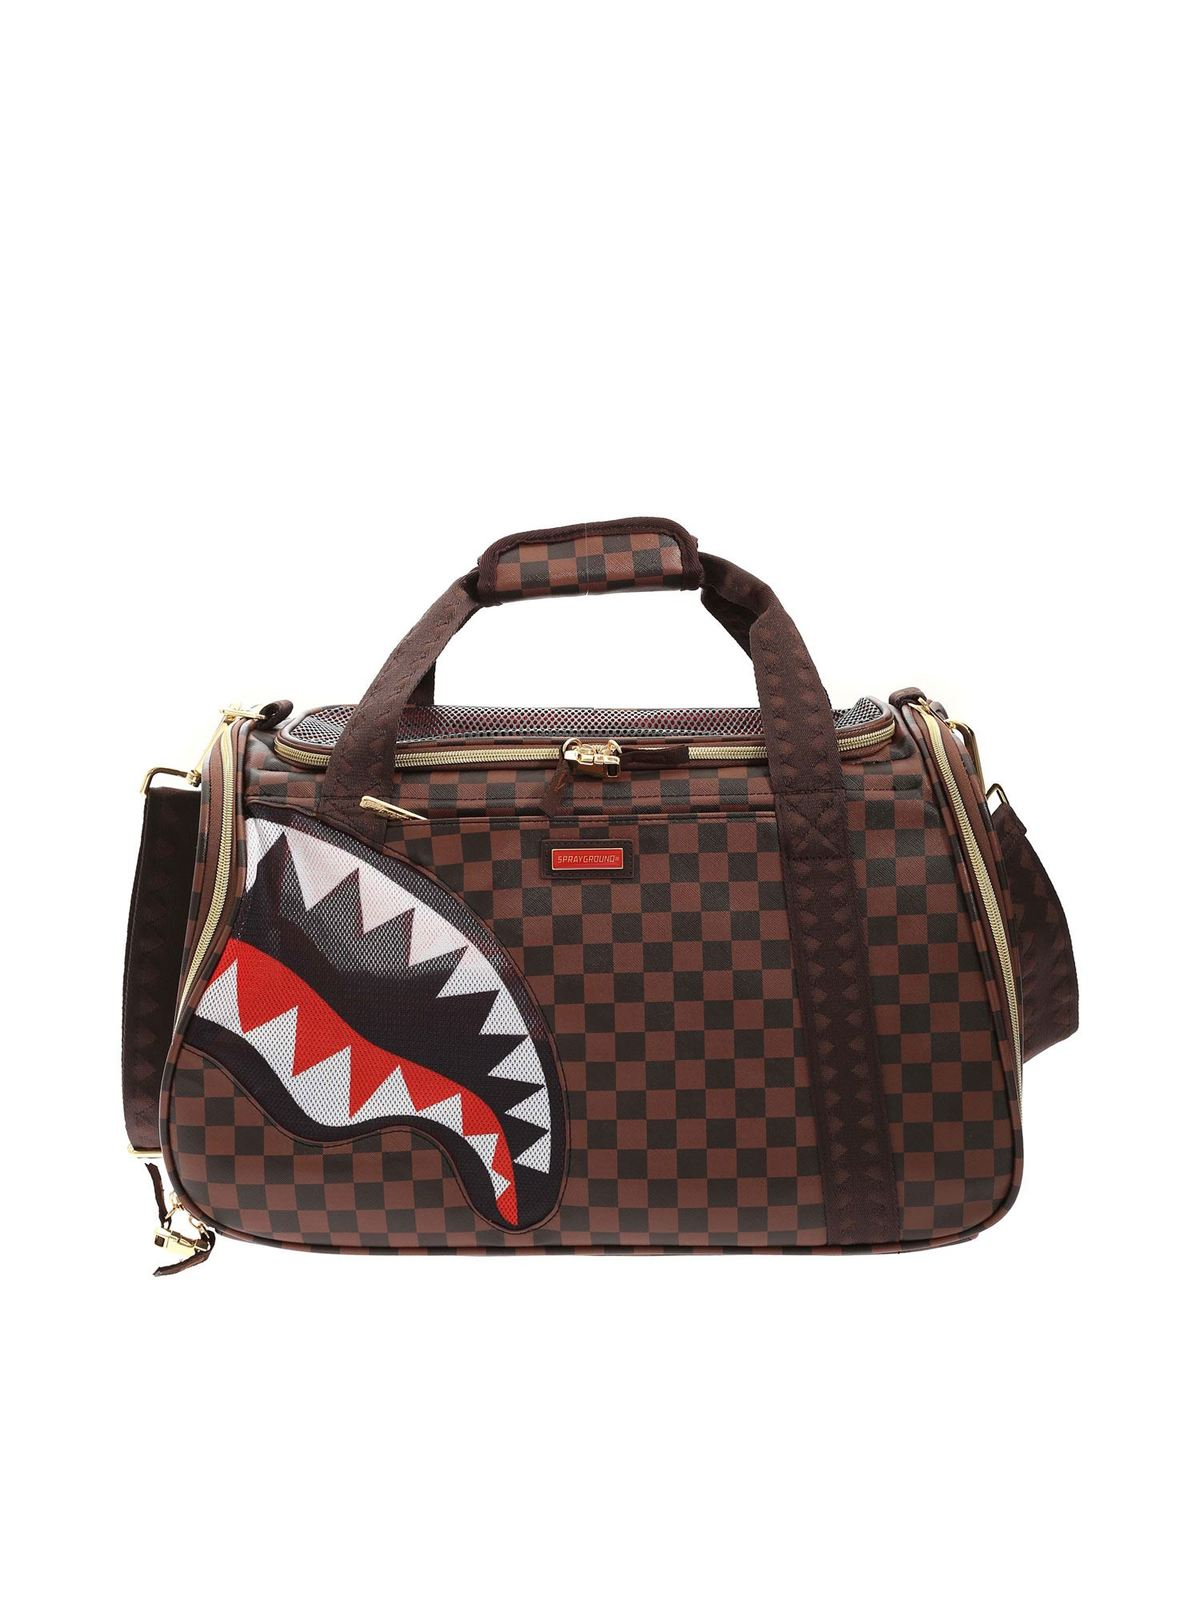 Sprayground SHARK PET CARRIER CHECKED BAG IN BROWN